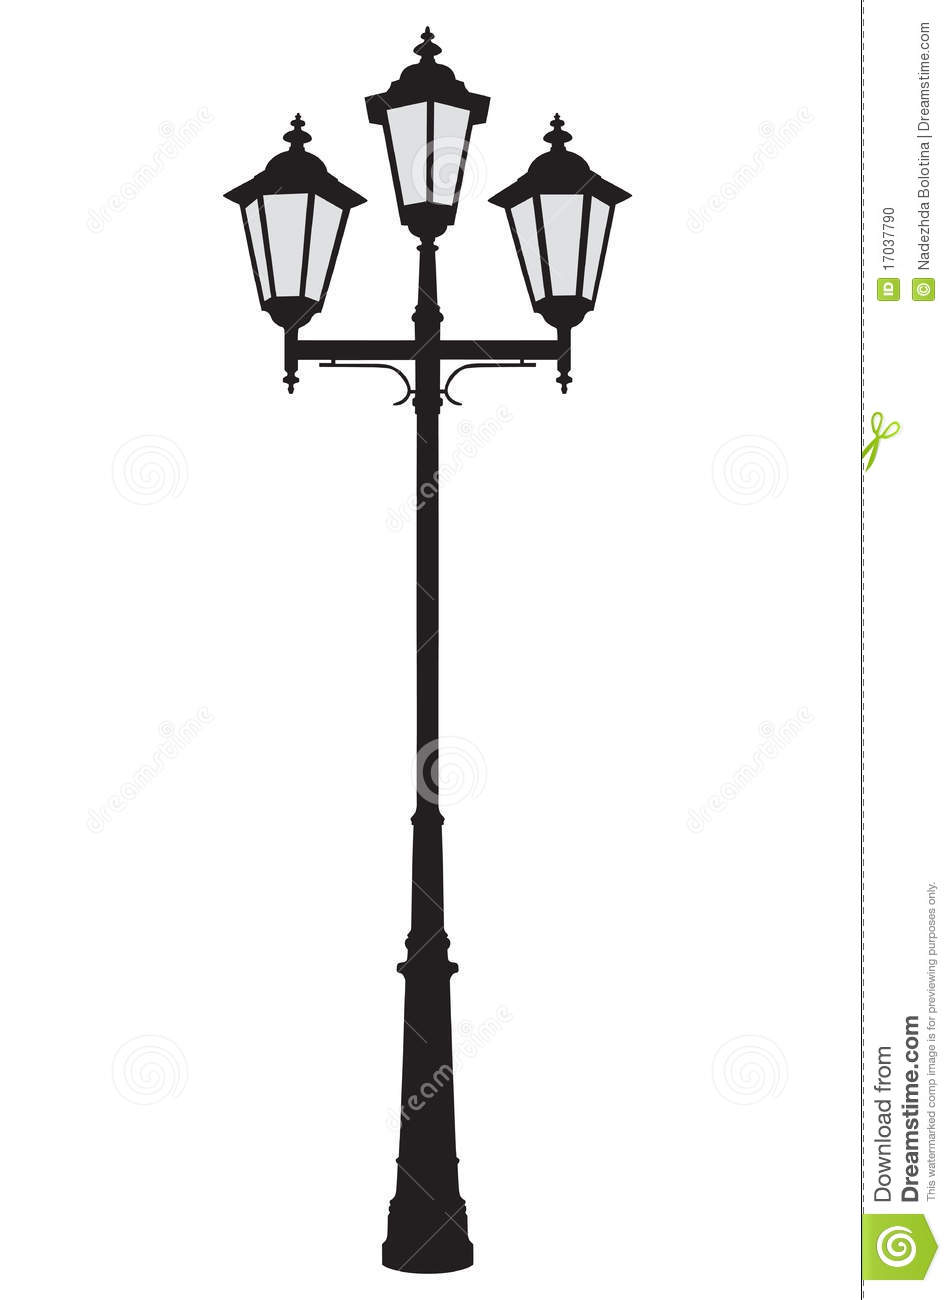 Lamppost, vector stock vector. Illustration of background - 17037790 for Street Lamp Post Vector  300lyp